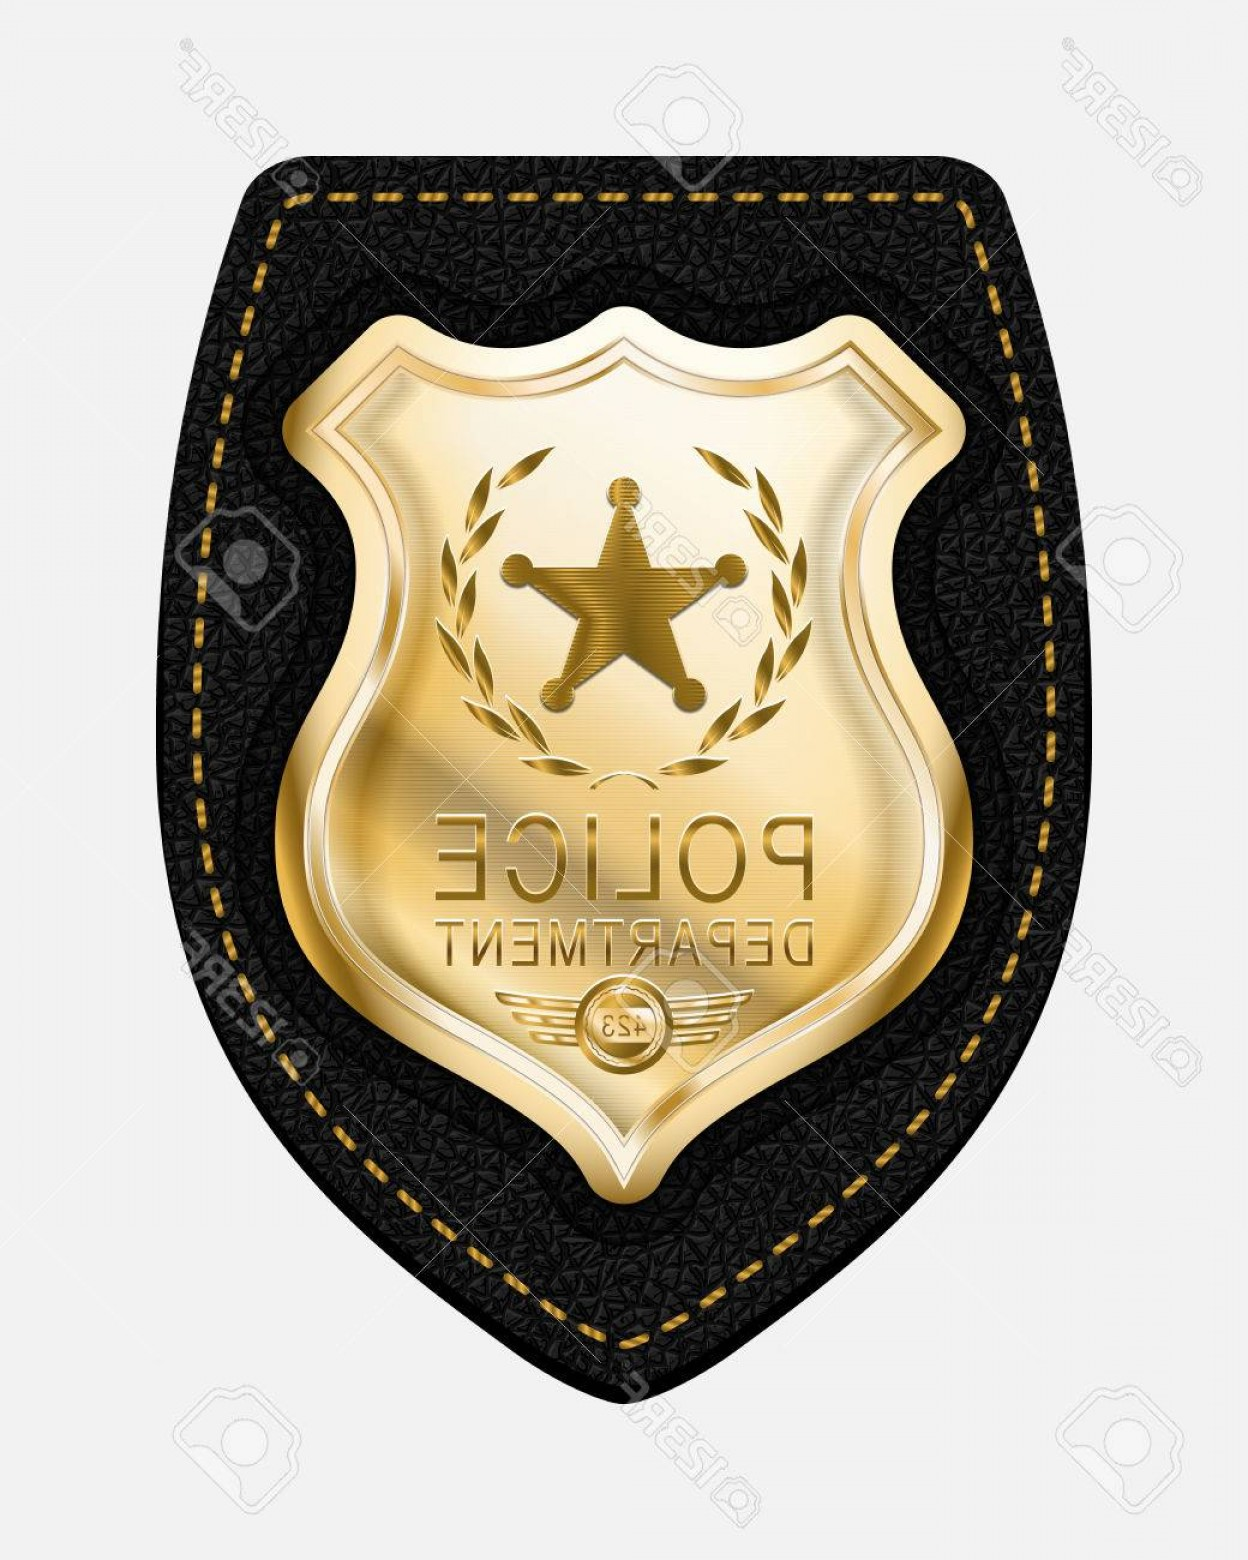 Law Enforcement Badges Vector: Photostock Vector Police Badge Realistic Vector Golden Police Badge Placed On Leather Background